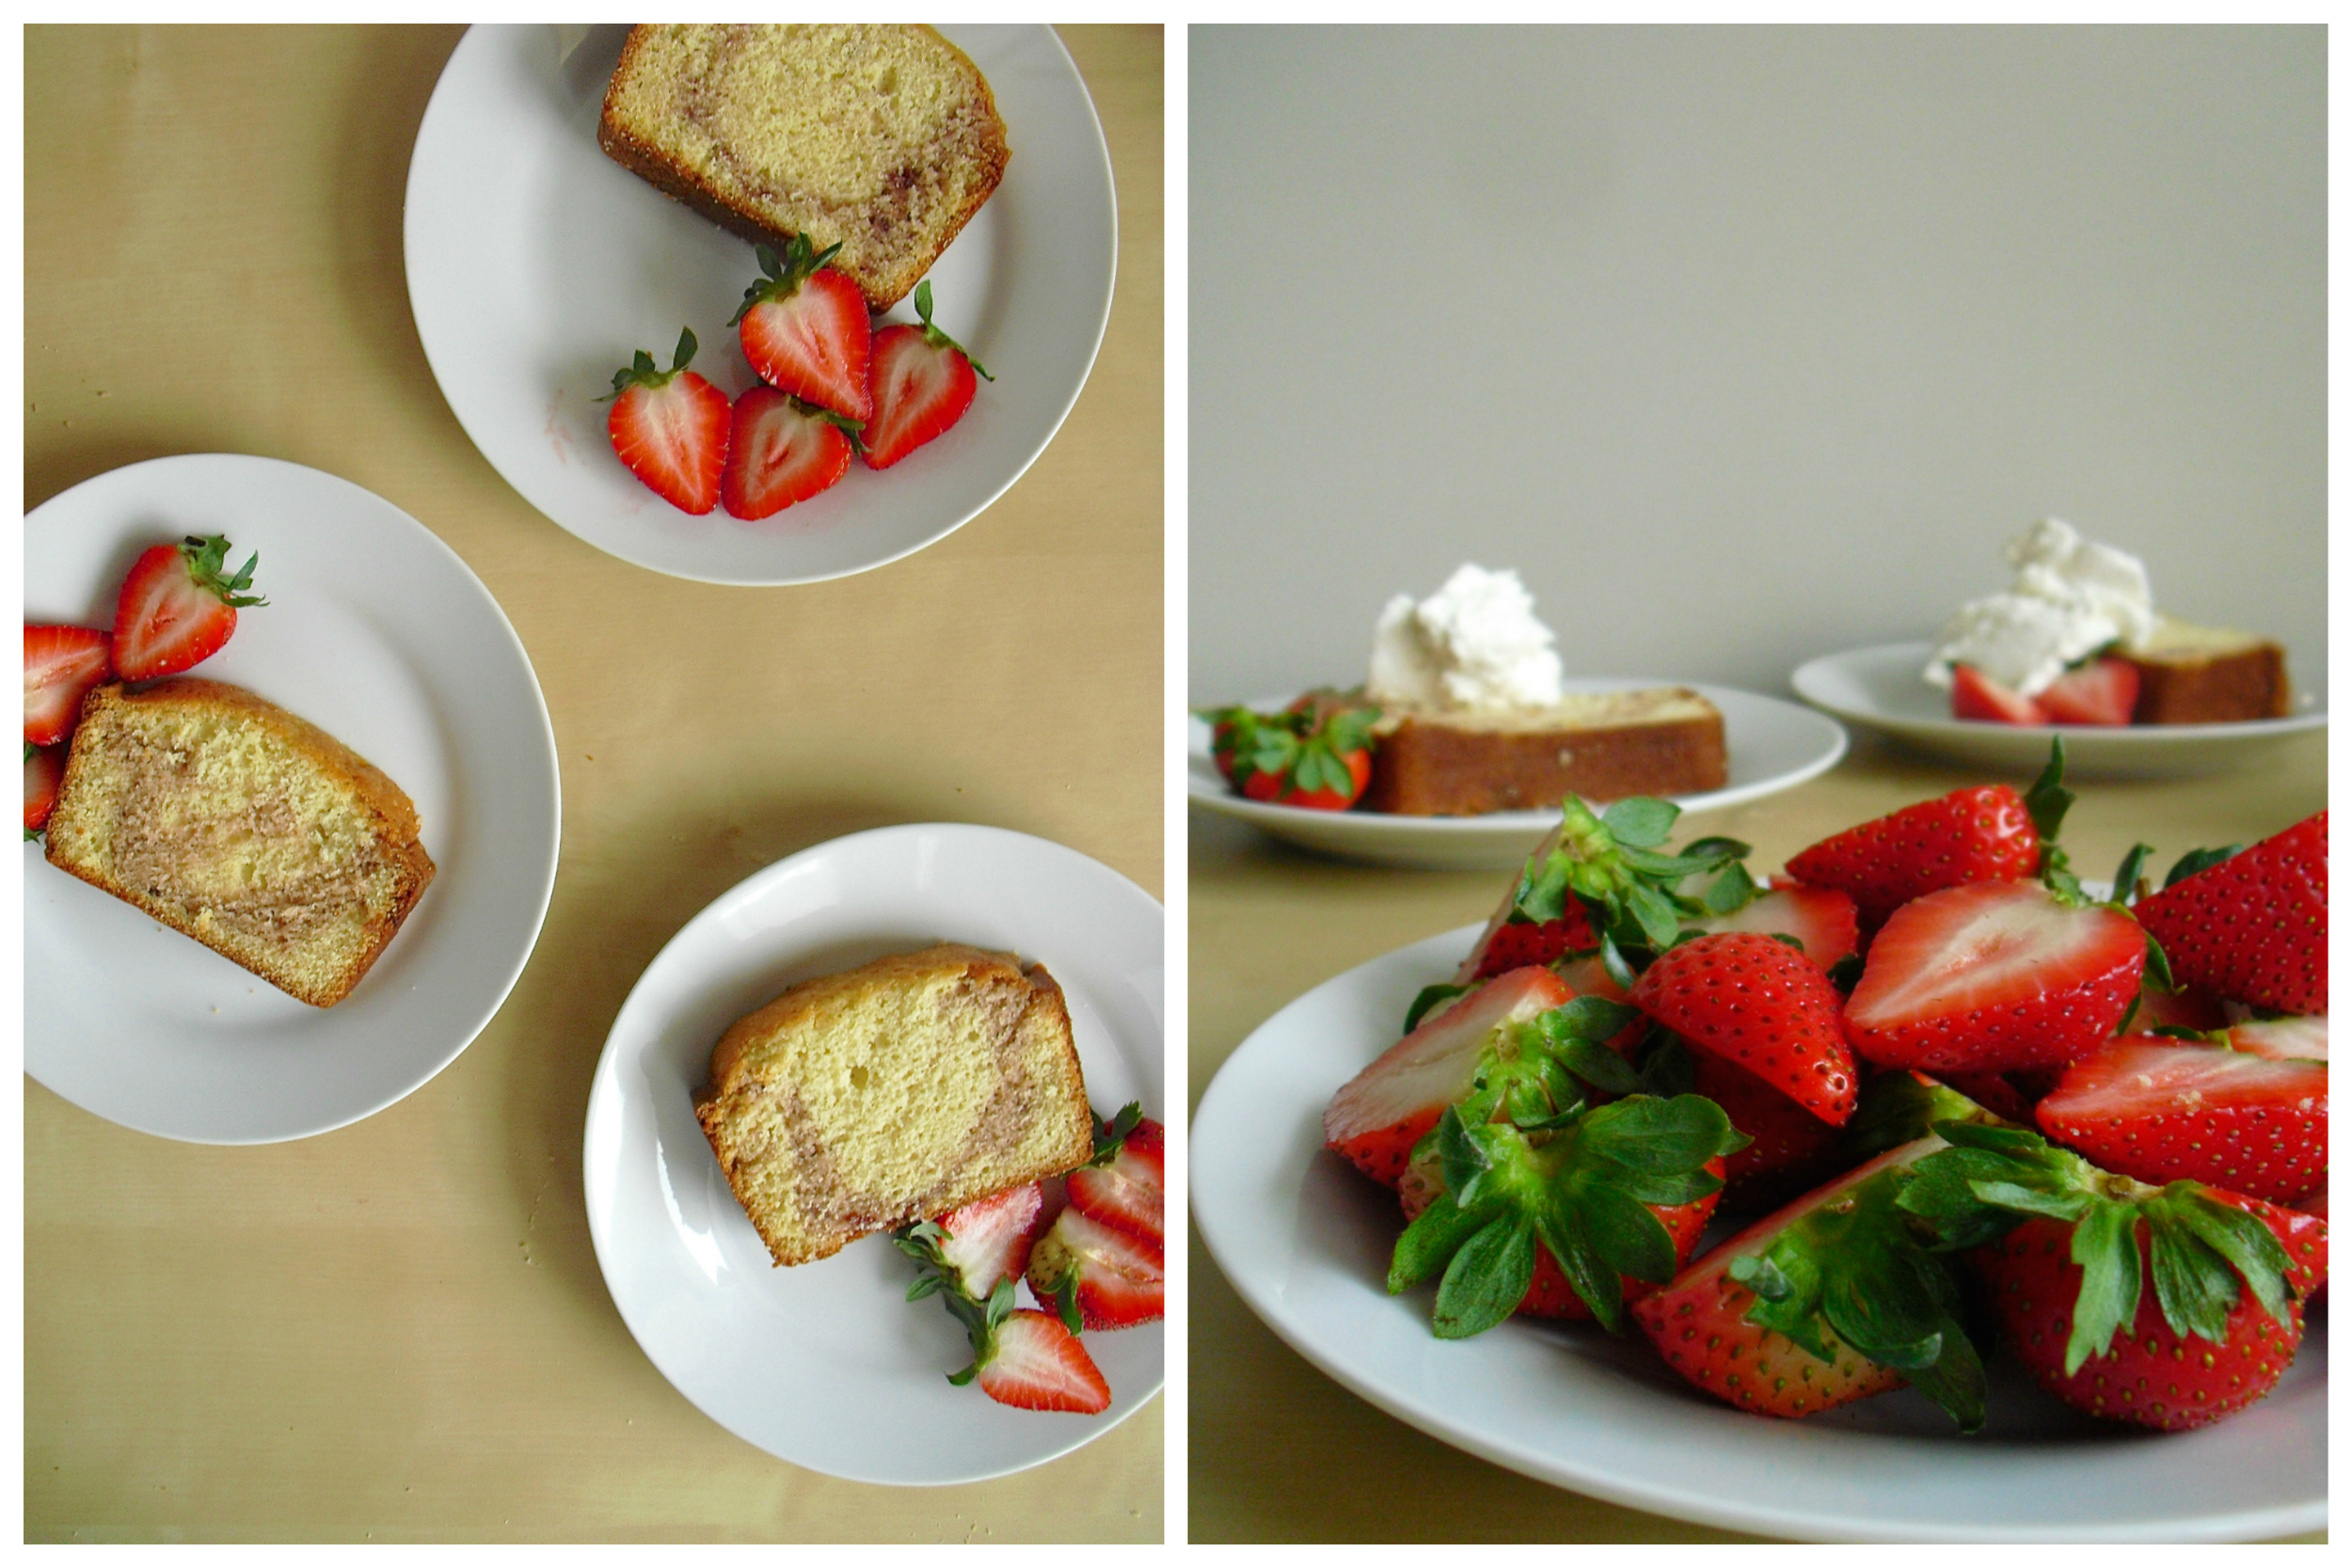 Strawberry-almond-pound-cake.jpg